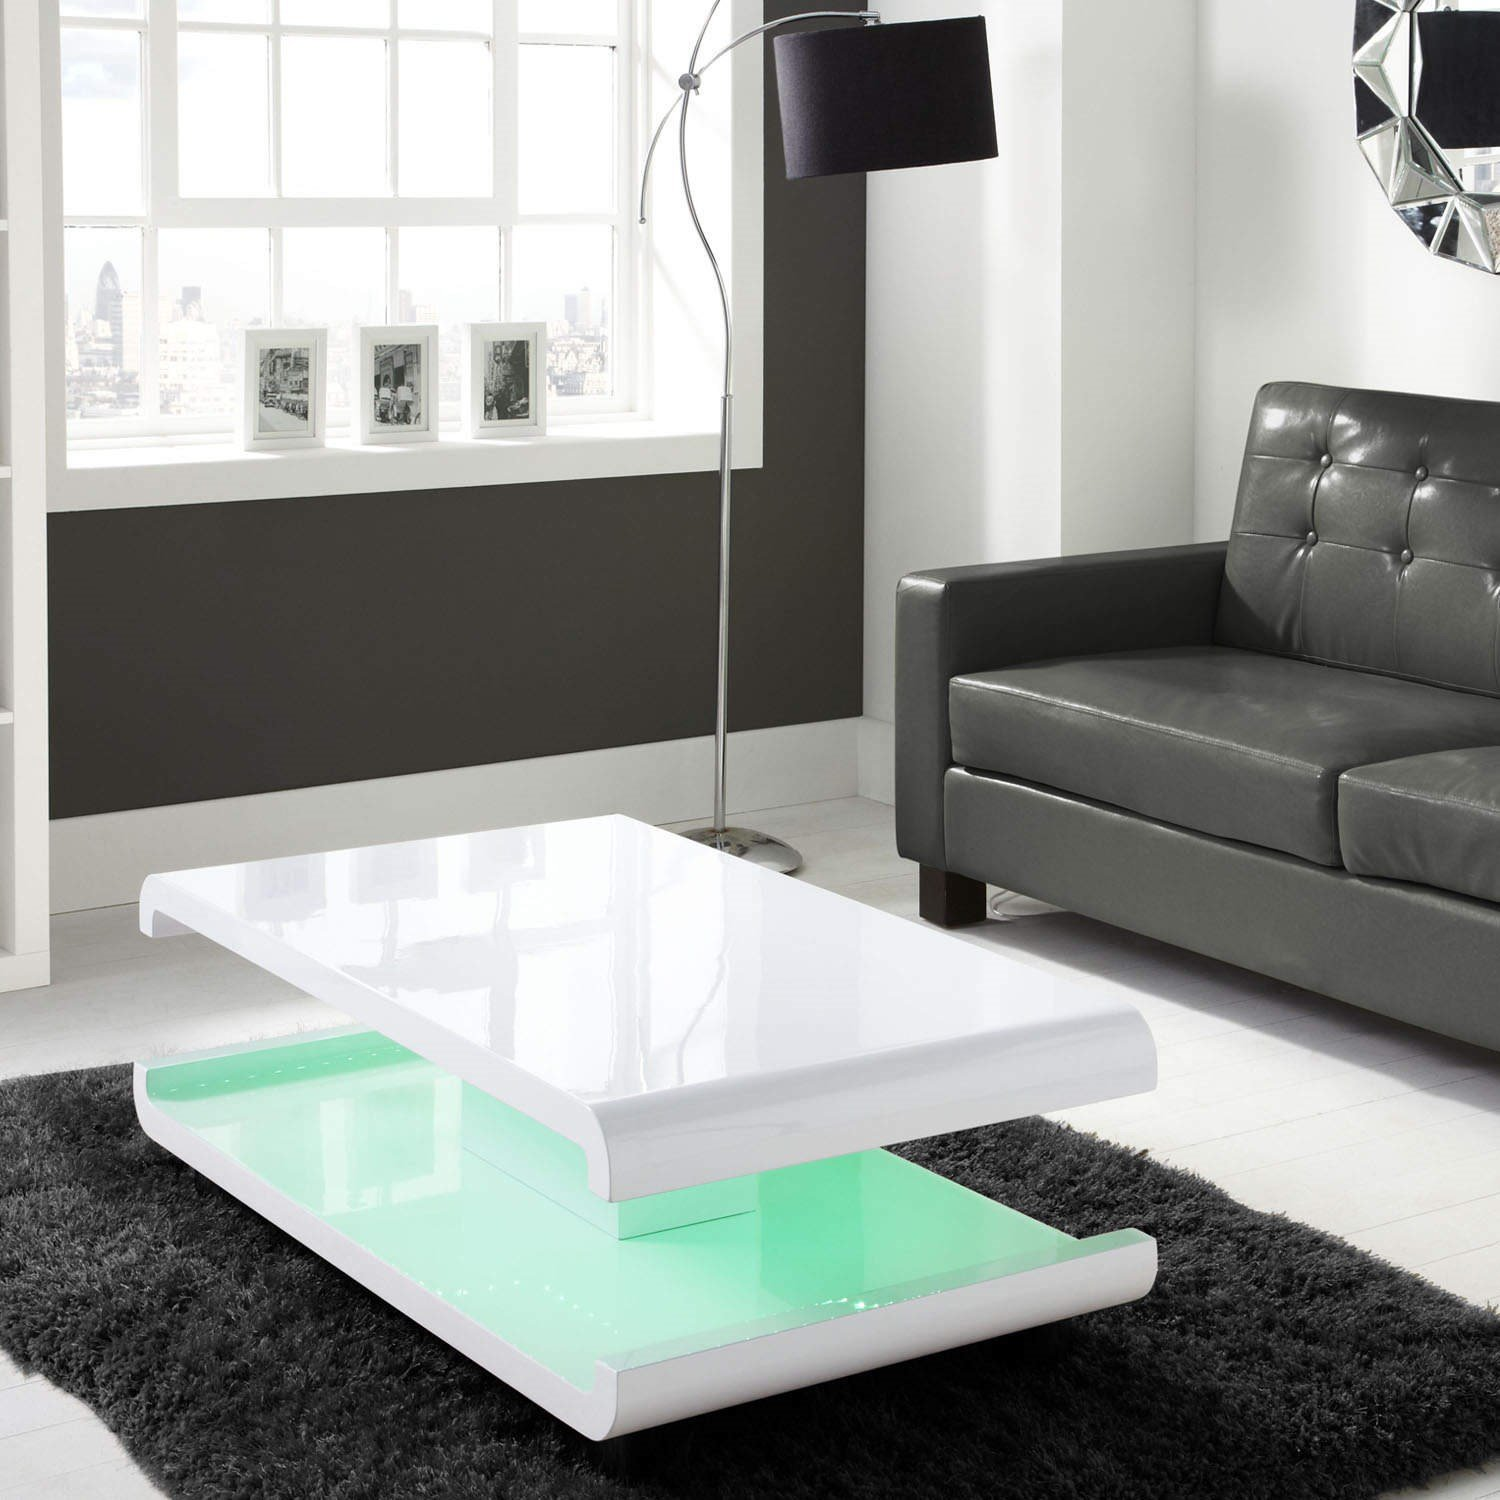 Tiffany White High Gloss Coffee Table with LED Lighting Amazon